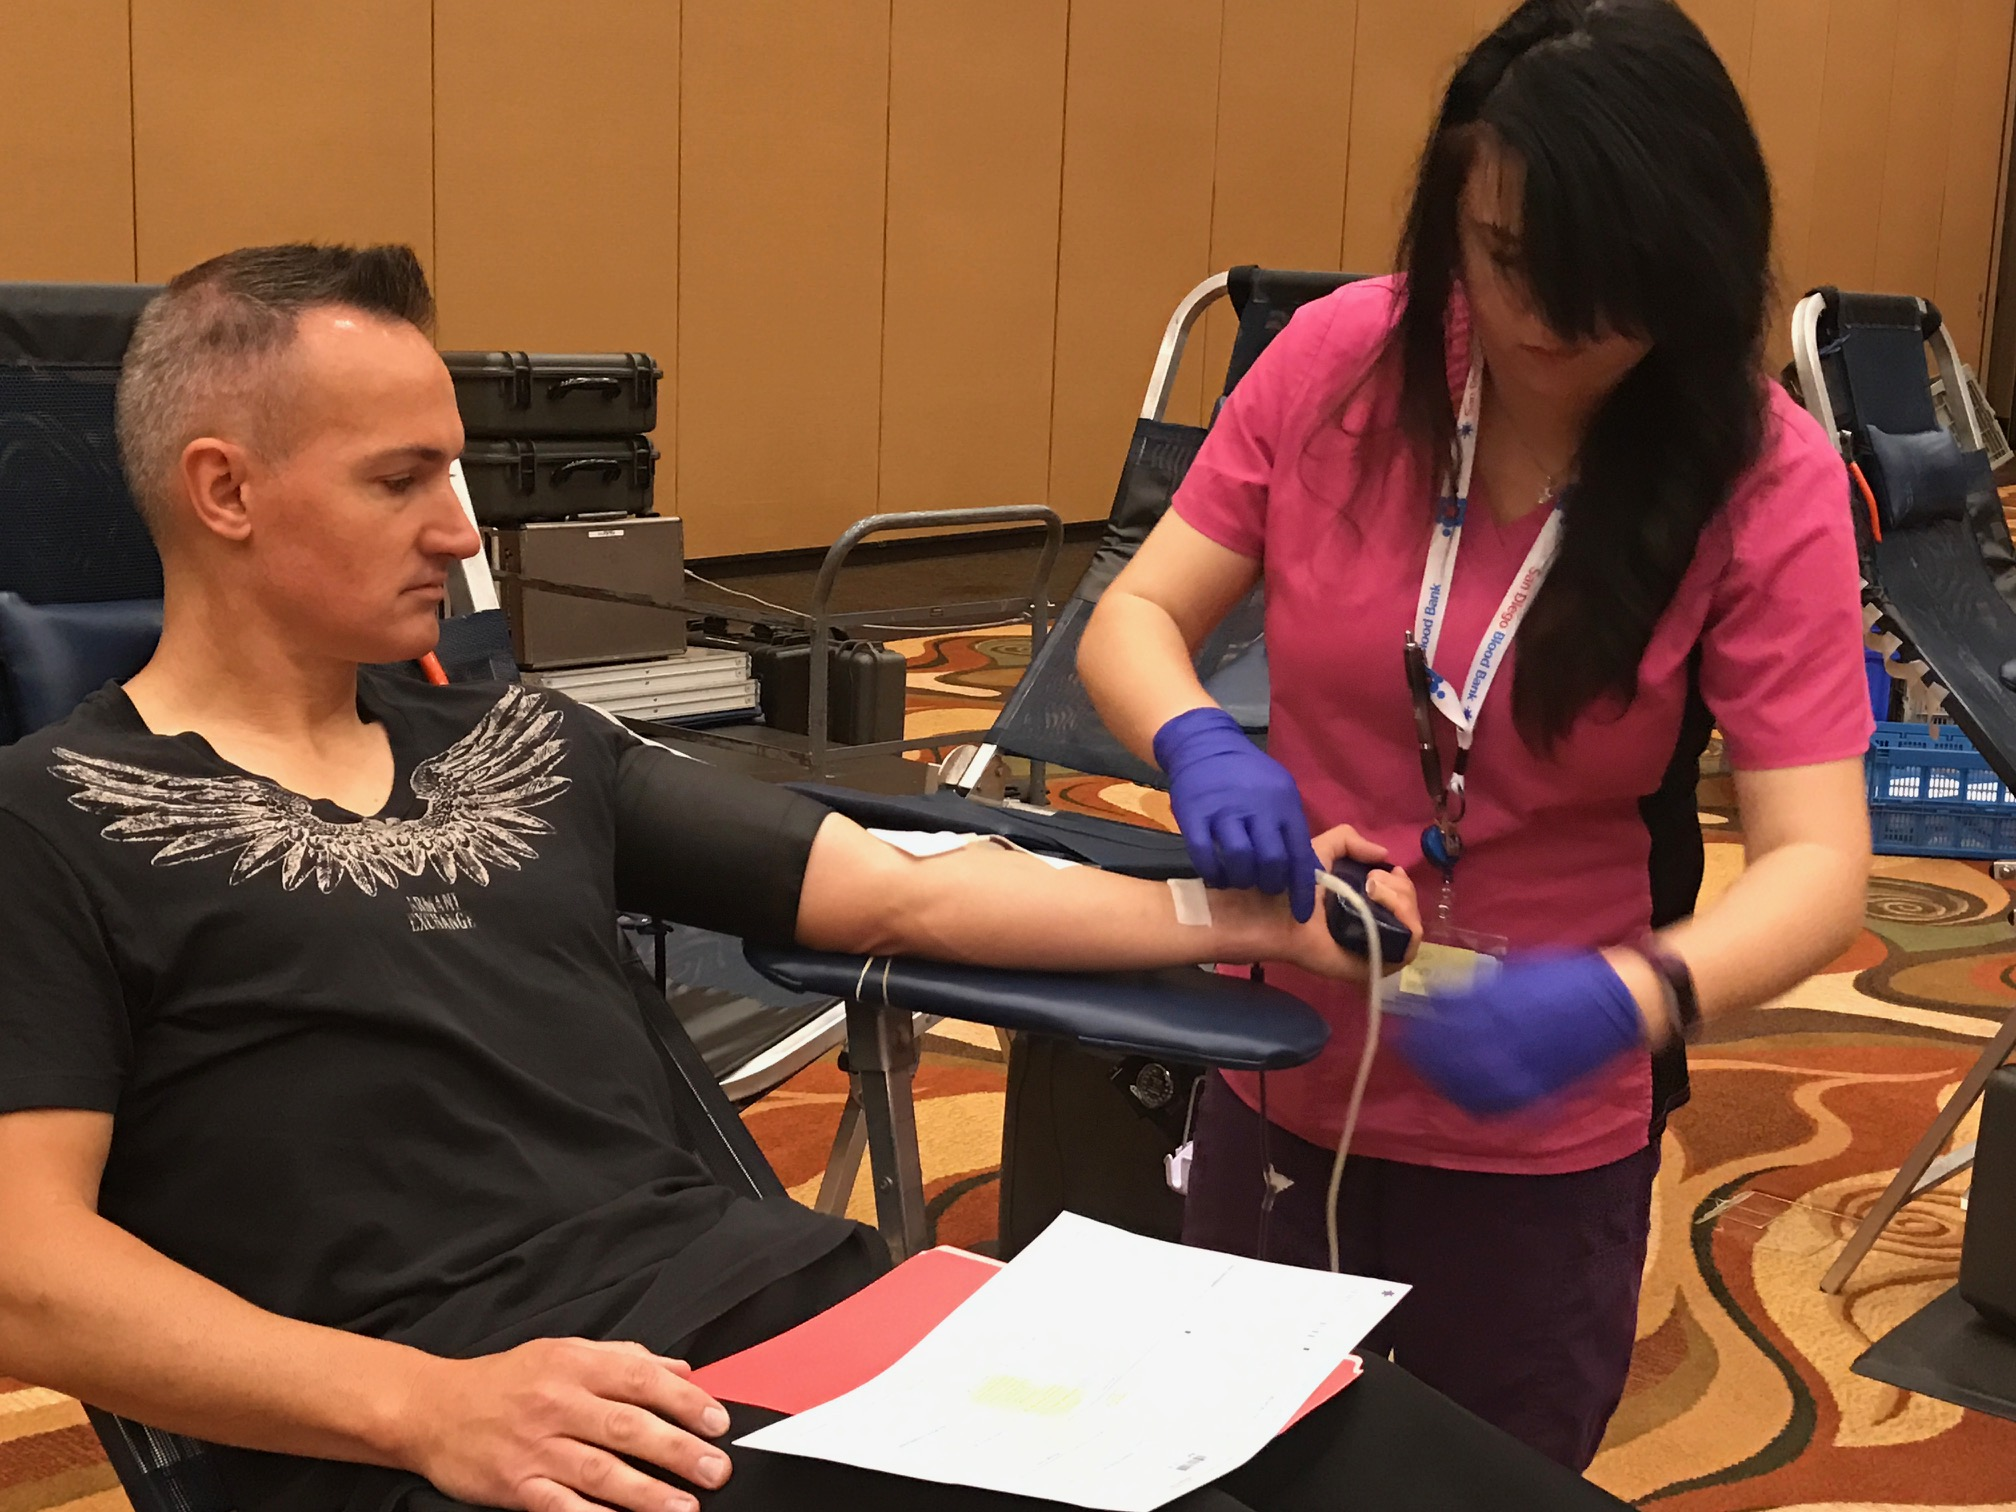 180 Lives Saved By Recent Blood Drive At Pechanga